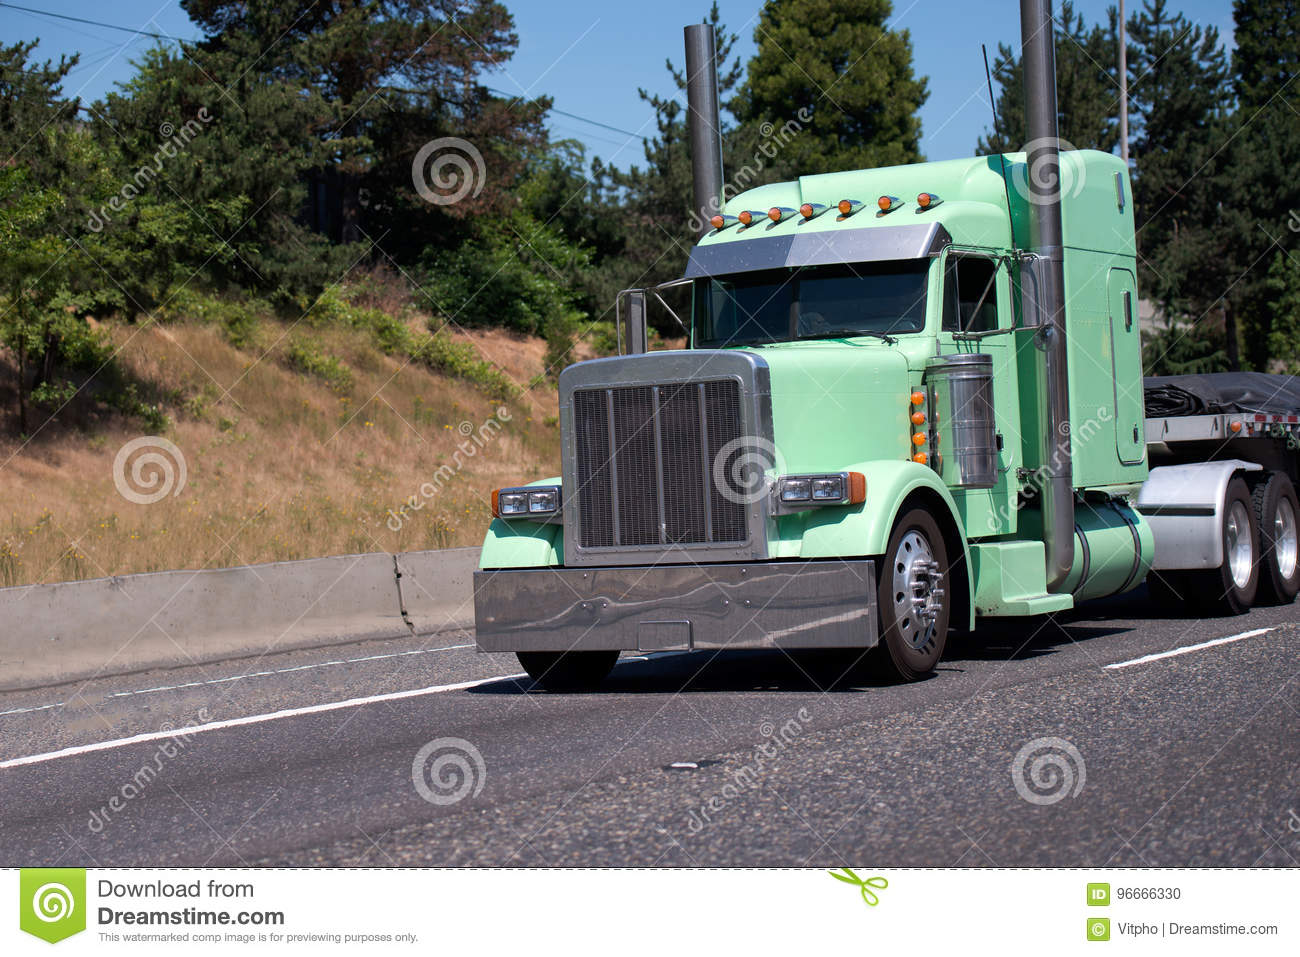 https www dreamstime com stock photo gorgeous custom build big rig semi truck painted light mint g professional popular green chrome accents tall exhaust image96666330